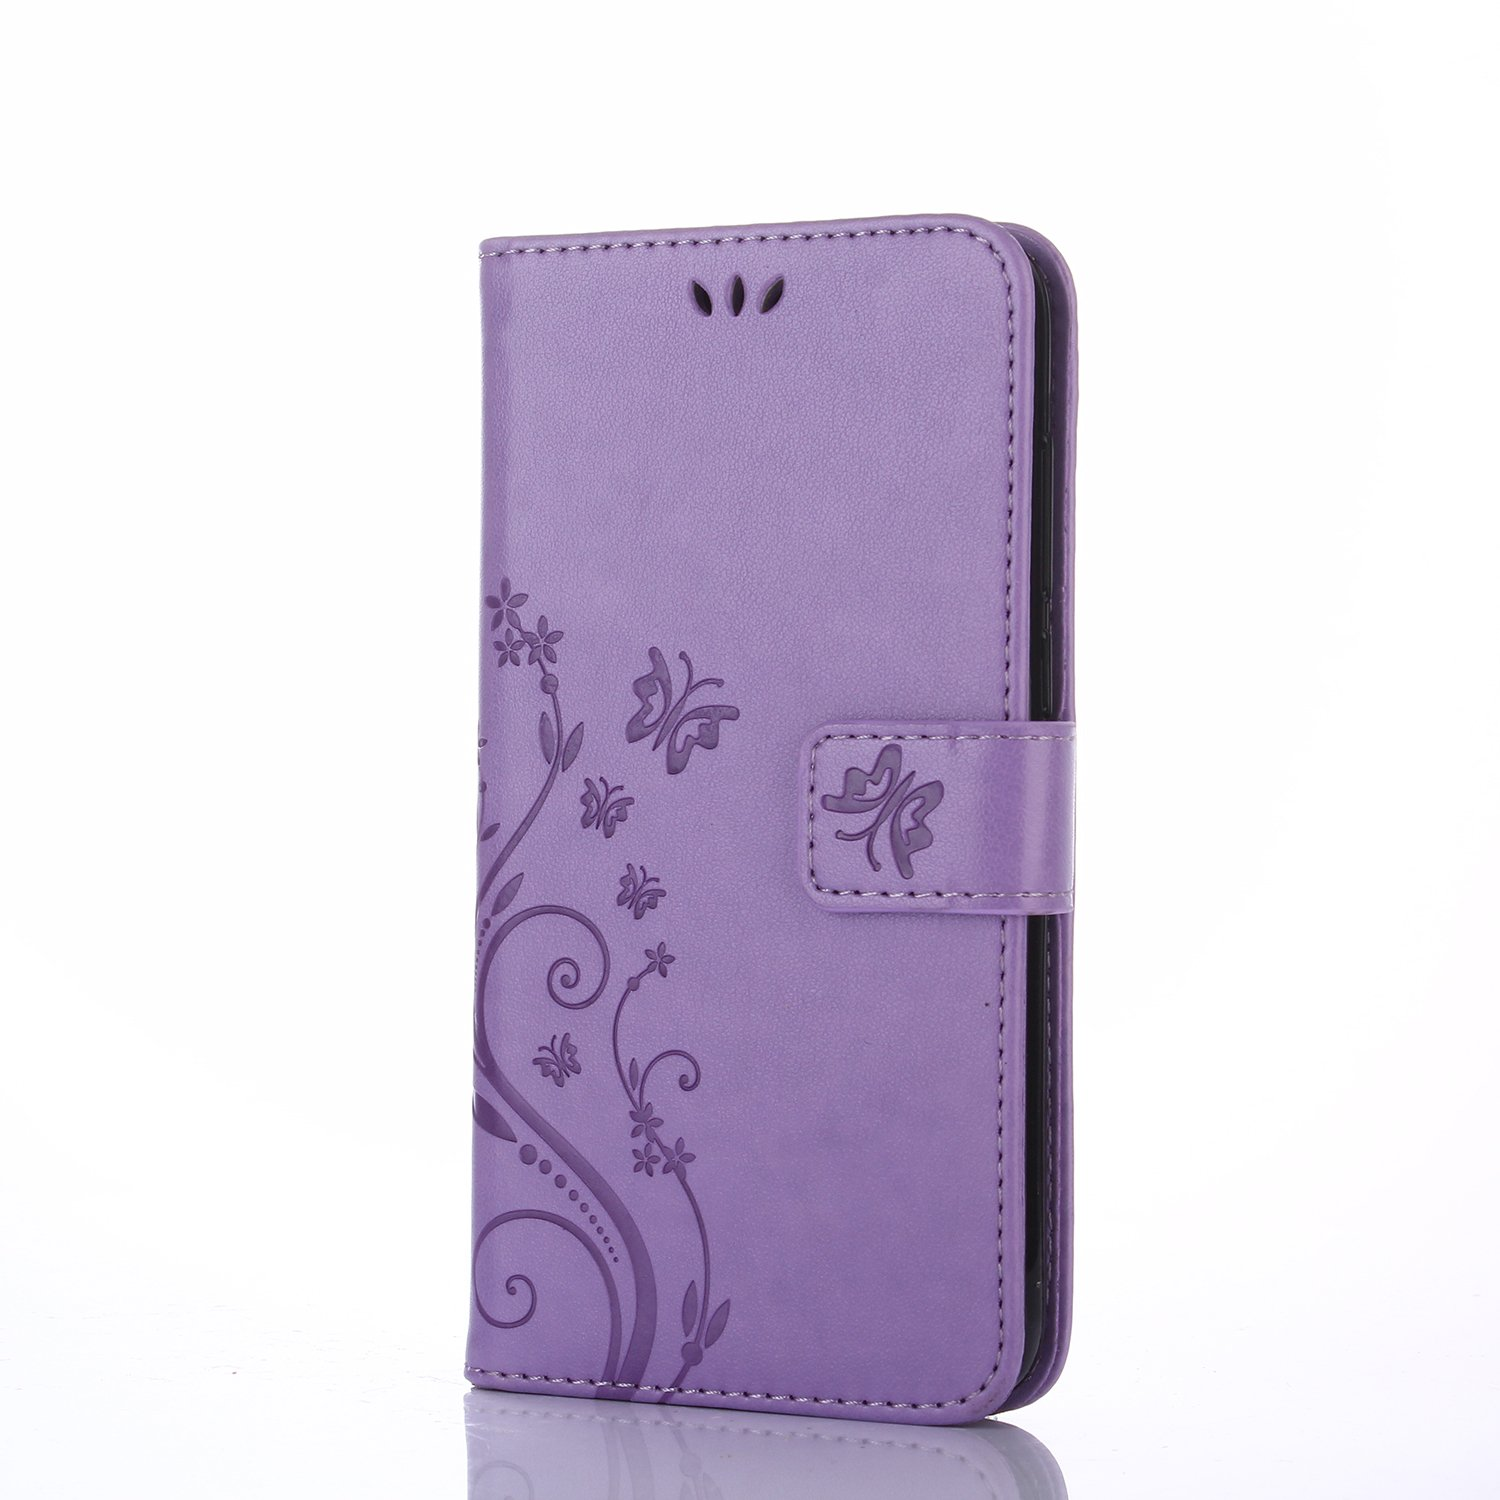 LG K4 2017Beautiful Case,LG K4 2017 Wallet Case,Flip Case Wallet Leather [Kickstand] Emboss Butterfly Flower Folio Magnetic Protective Cover with Card Slots for LG K4 2017 (LG K4 2017, Purple) BTJP